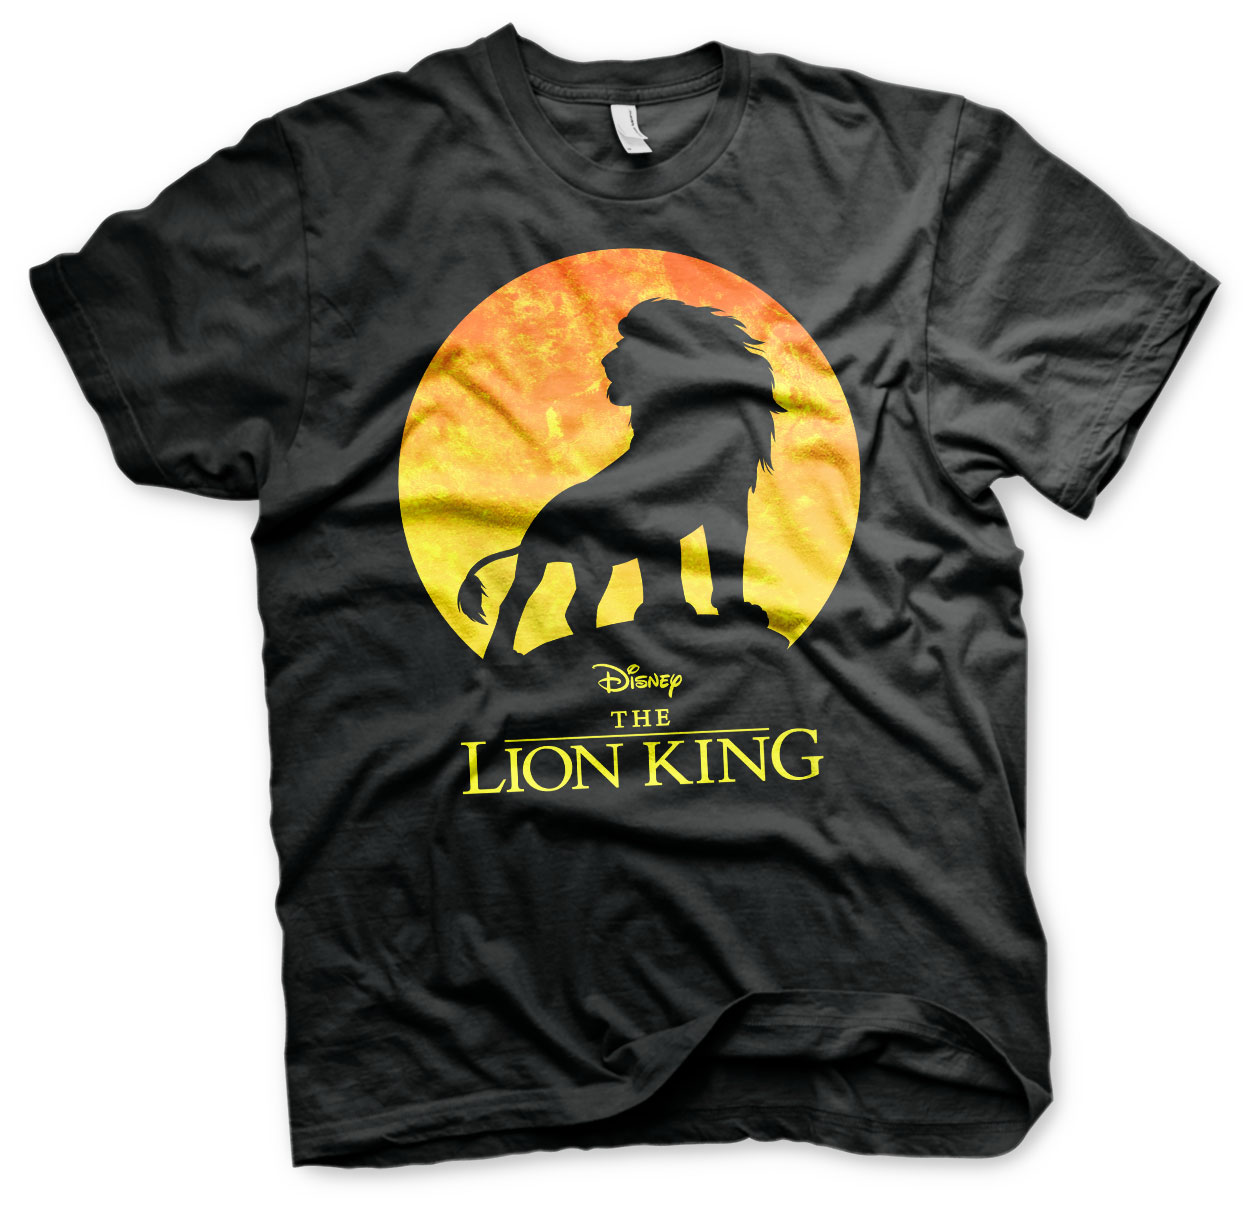 the-lion-king-loevernes-konge-t-shirt